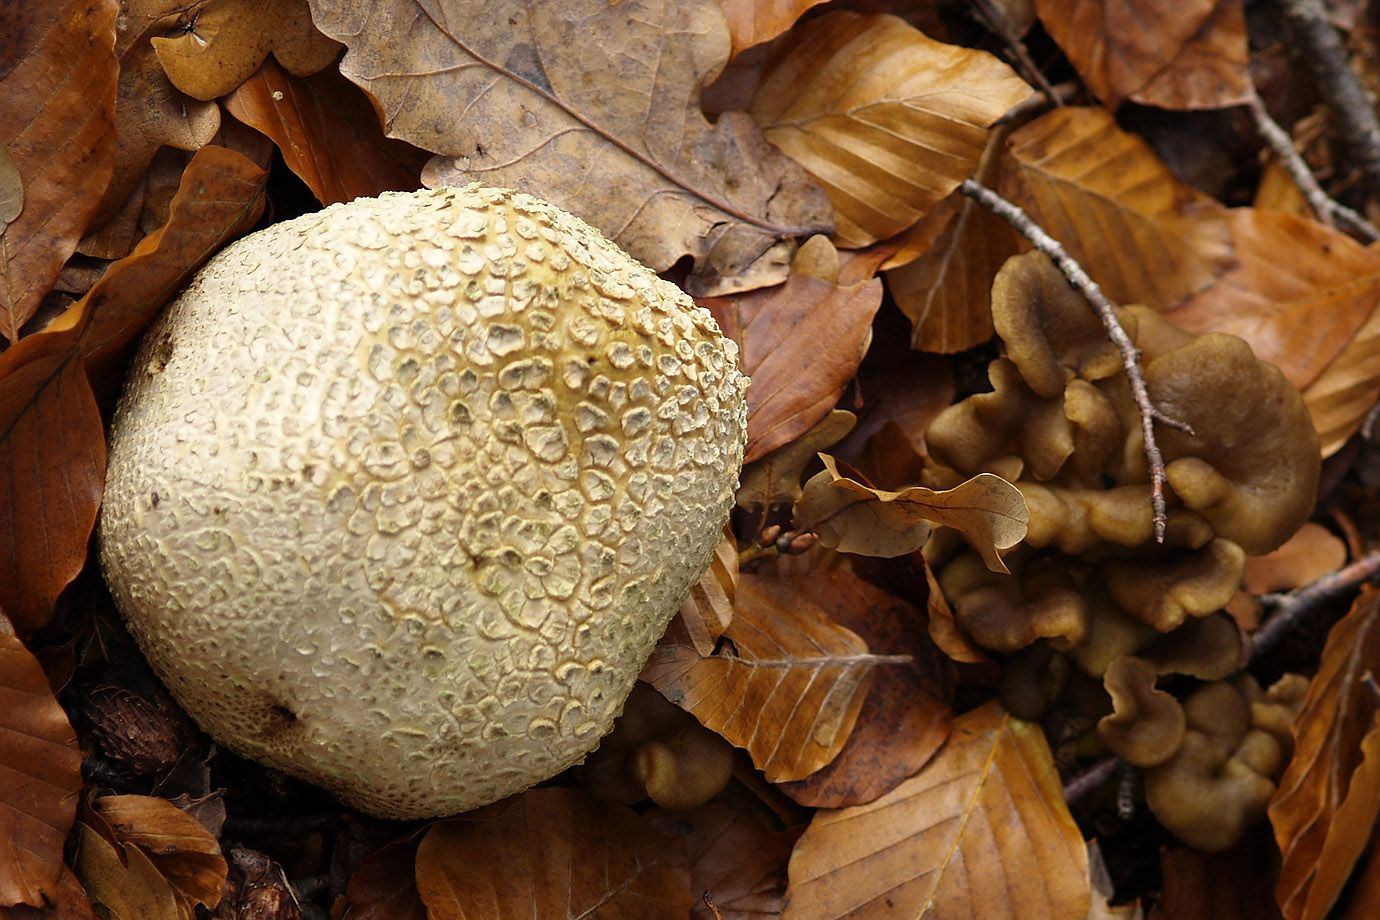 A Puffball besides other mushrooms in the autumn foliage.